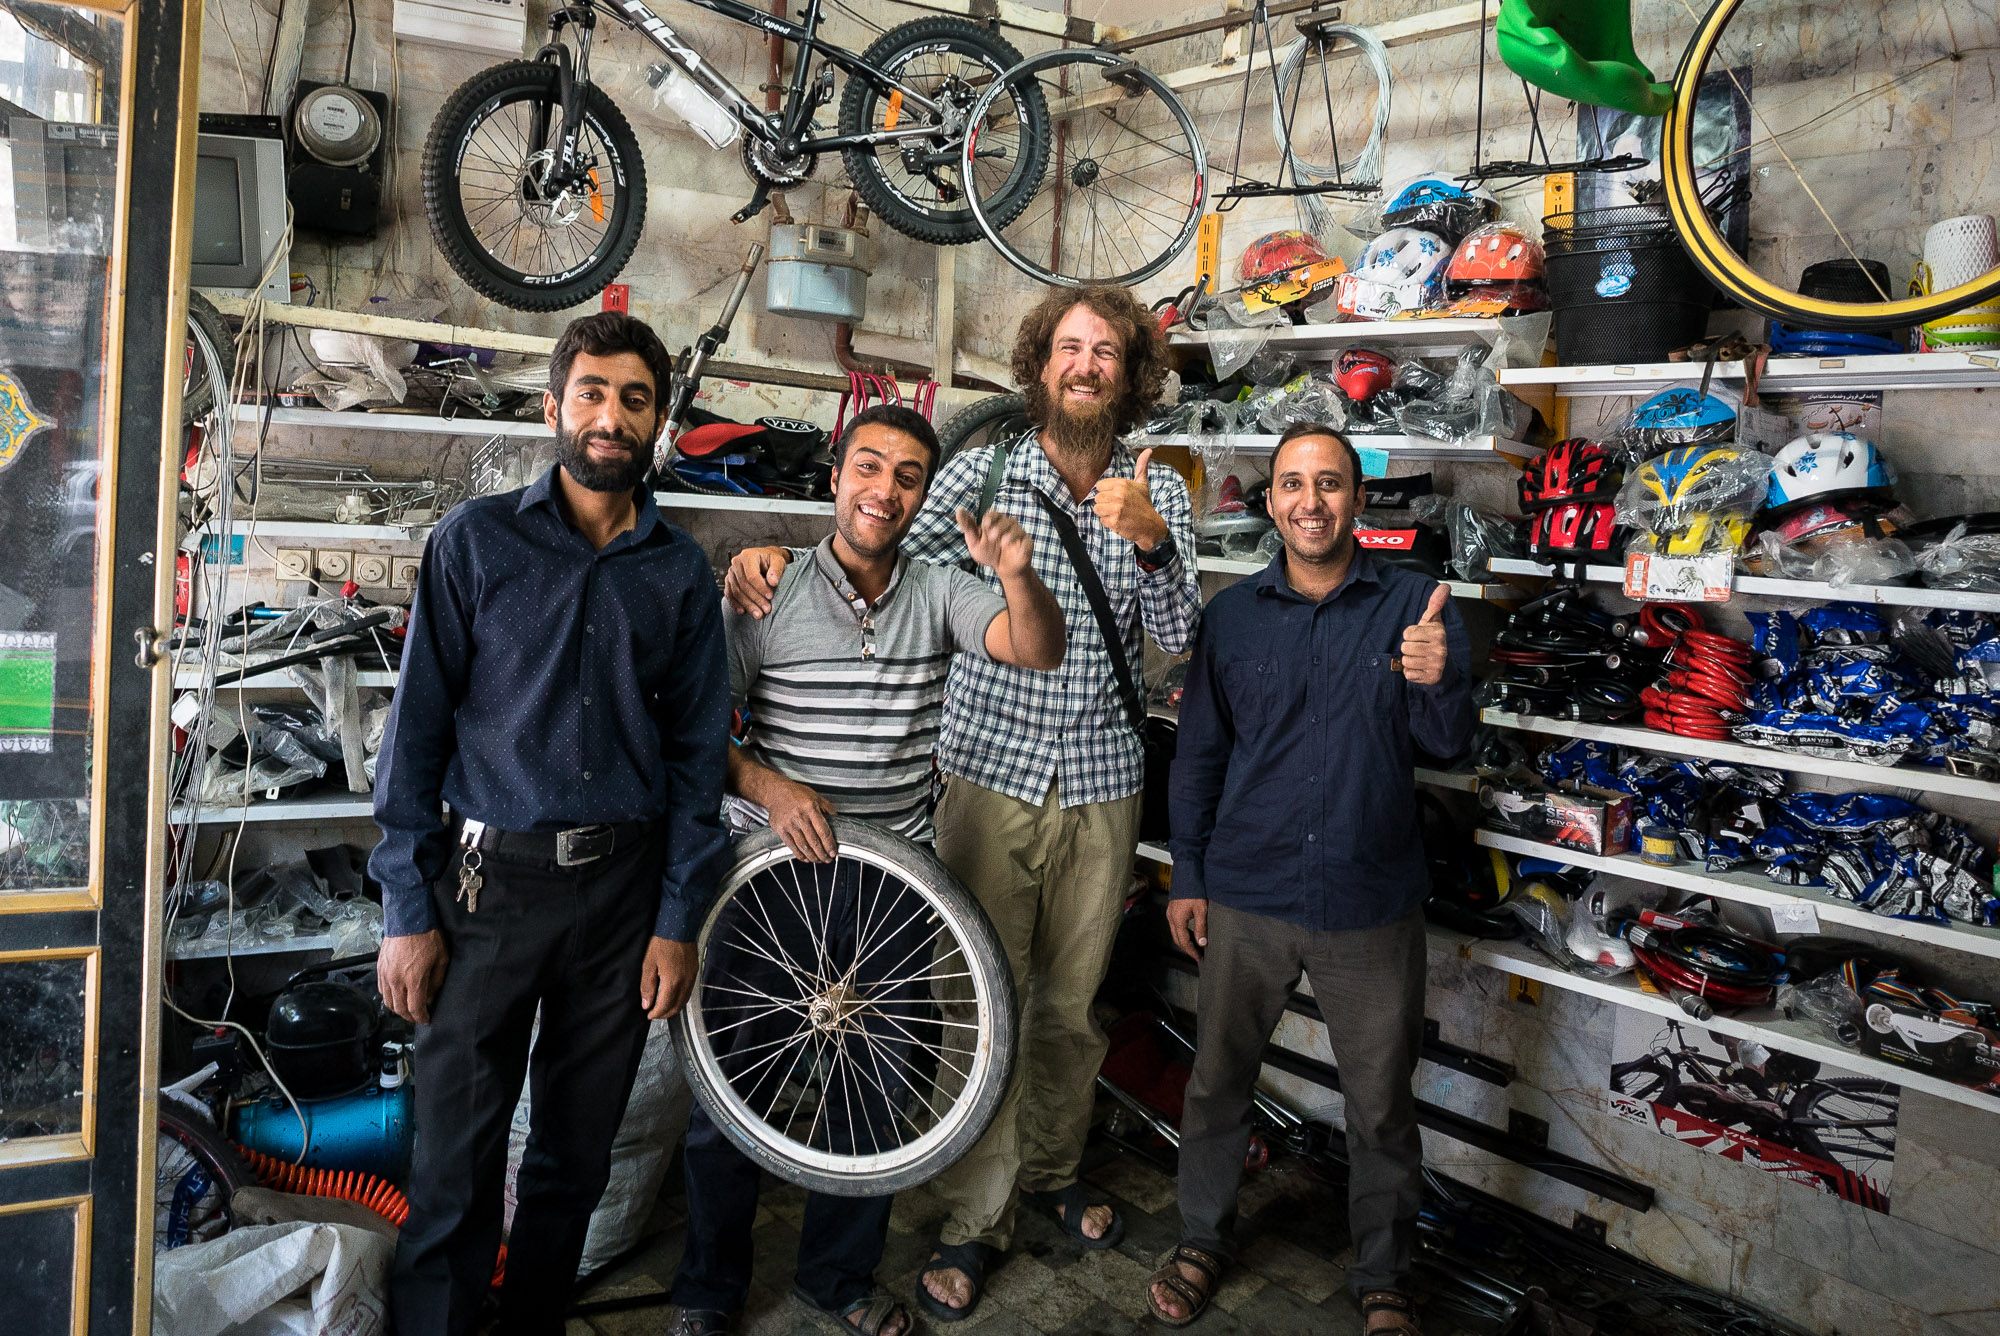 bike shop dudes